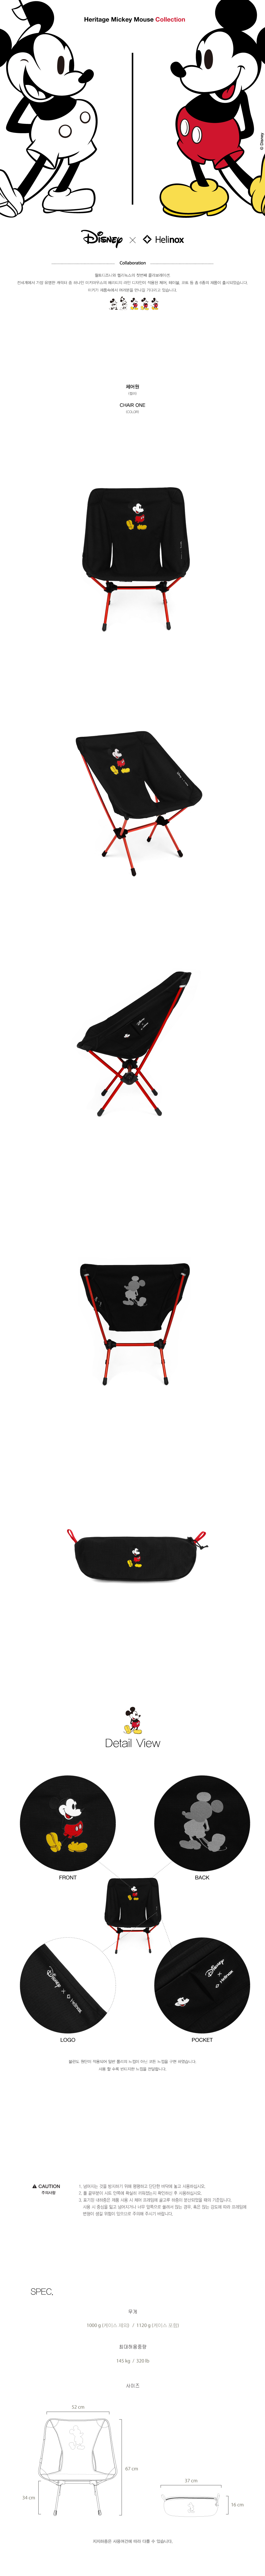 20171207-mickey-collaboration-chair-color.jpg